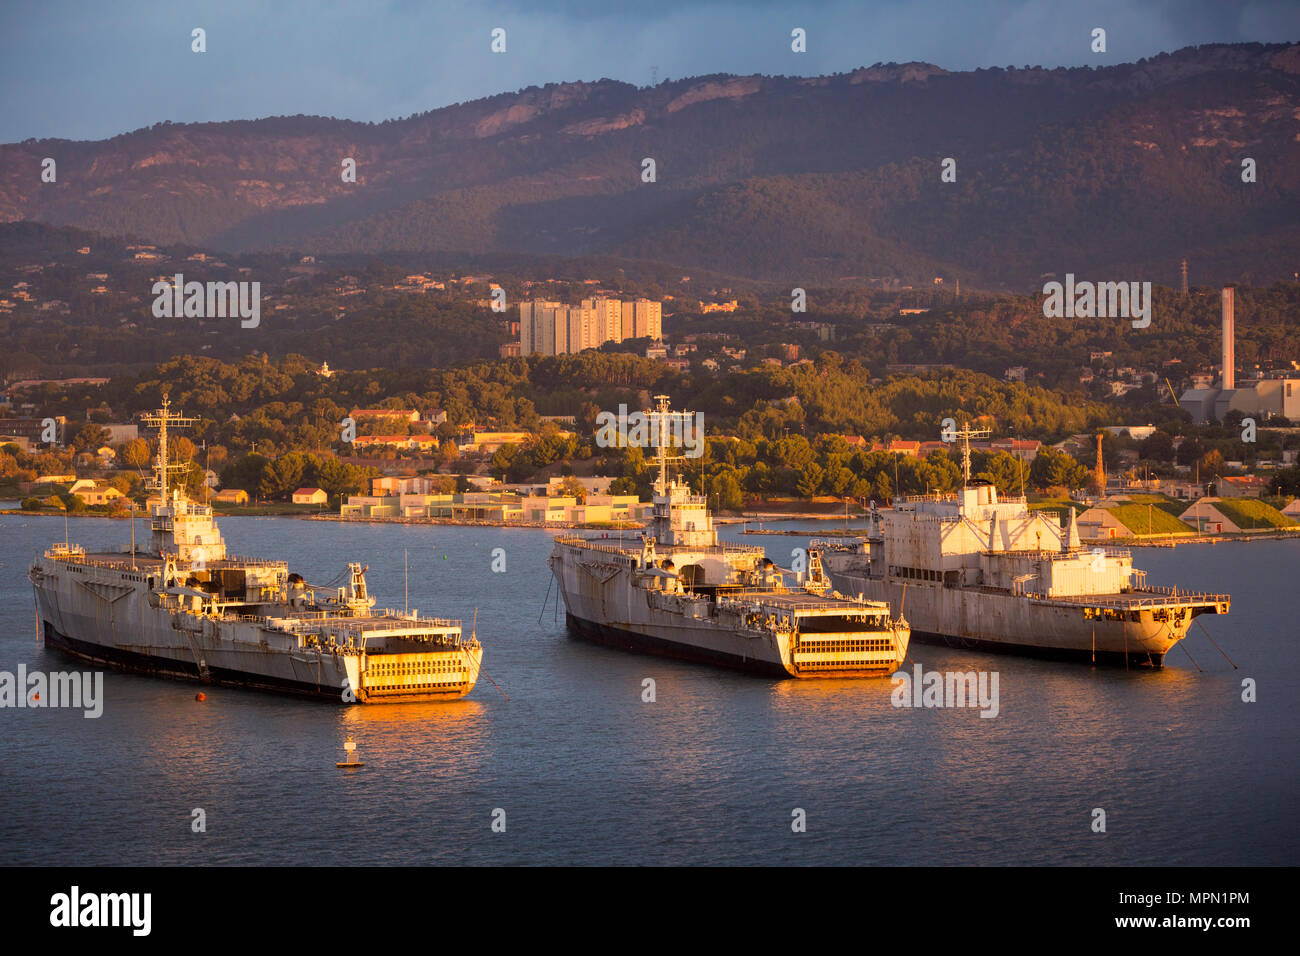 Sunrise over anchored, mothballed ships of the French Navy at Toulon, Provence, France - Stock Image